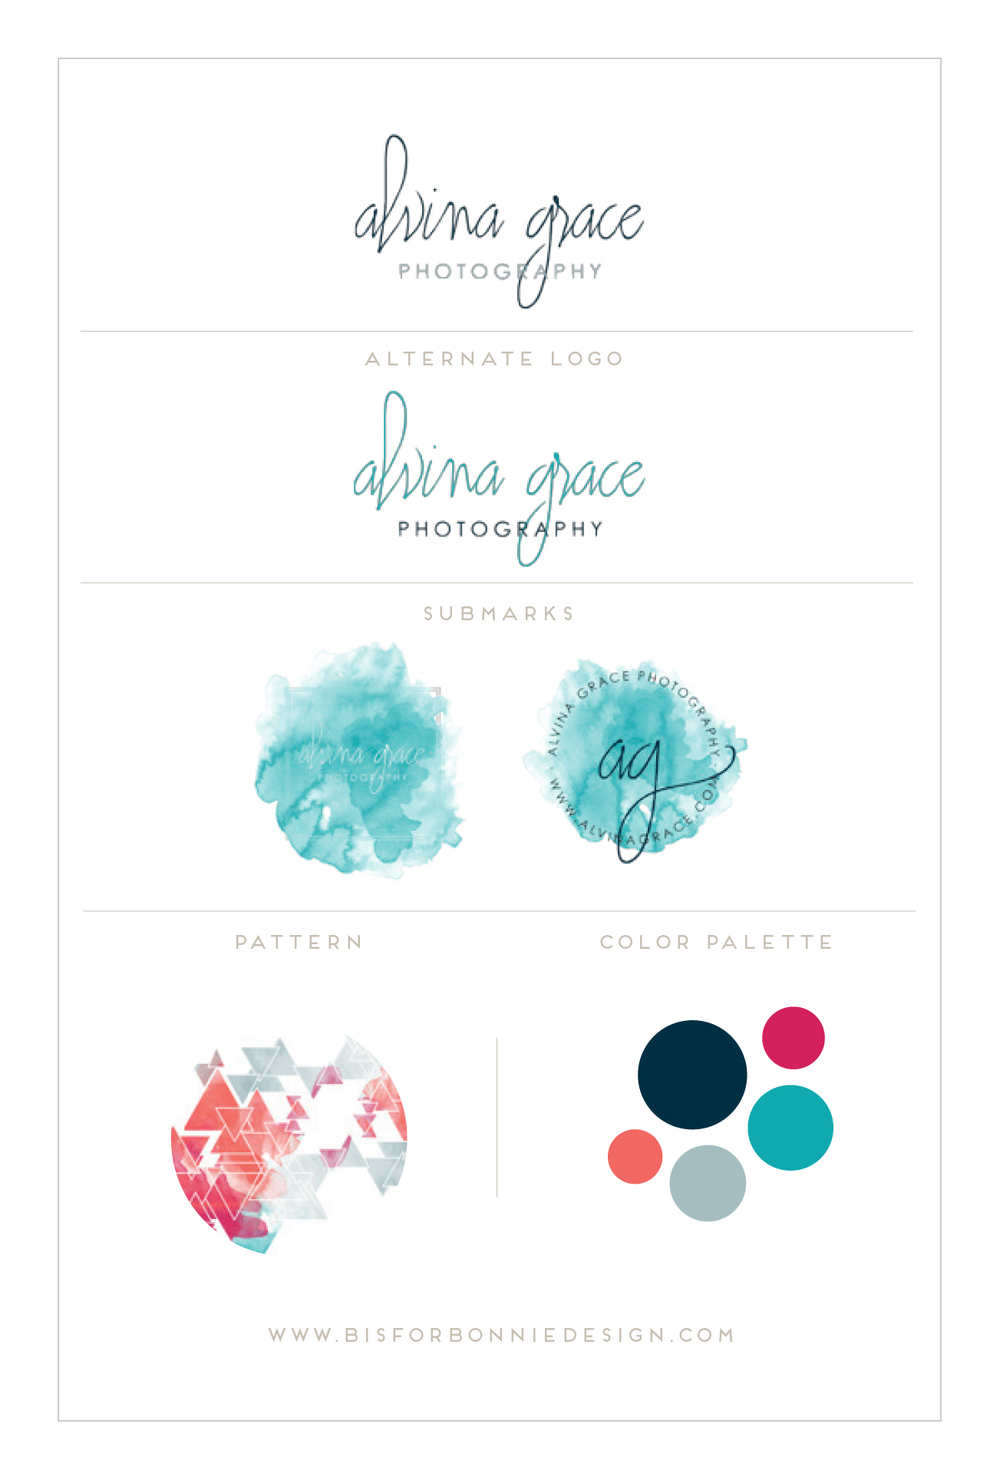 Alvina Grace Photography Branding Board.jpg